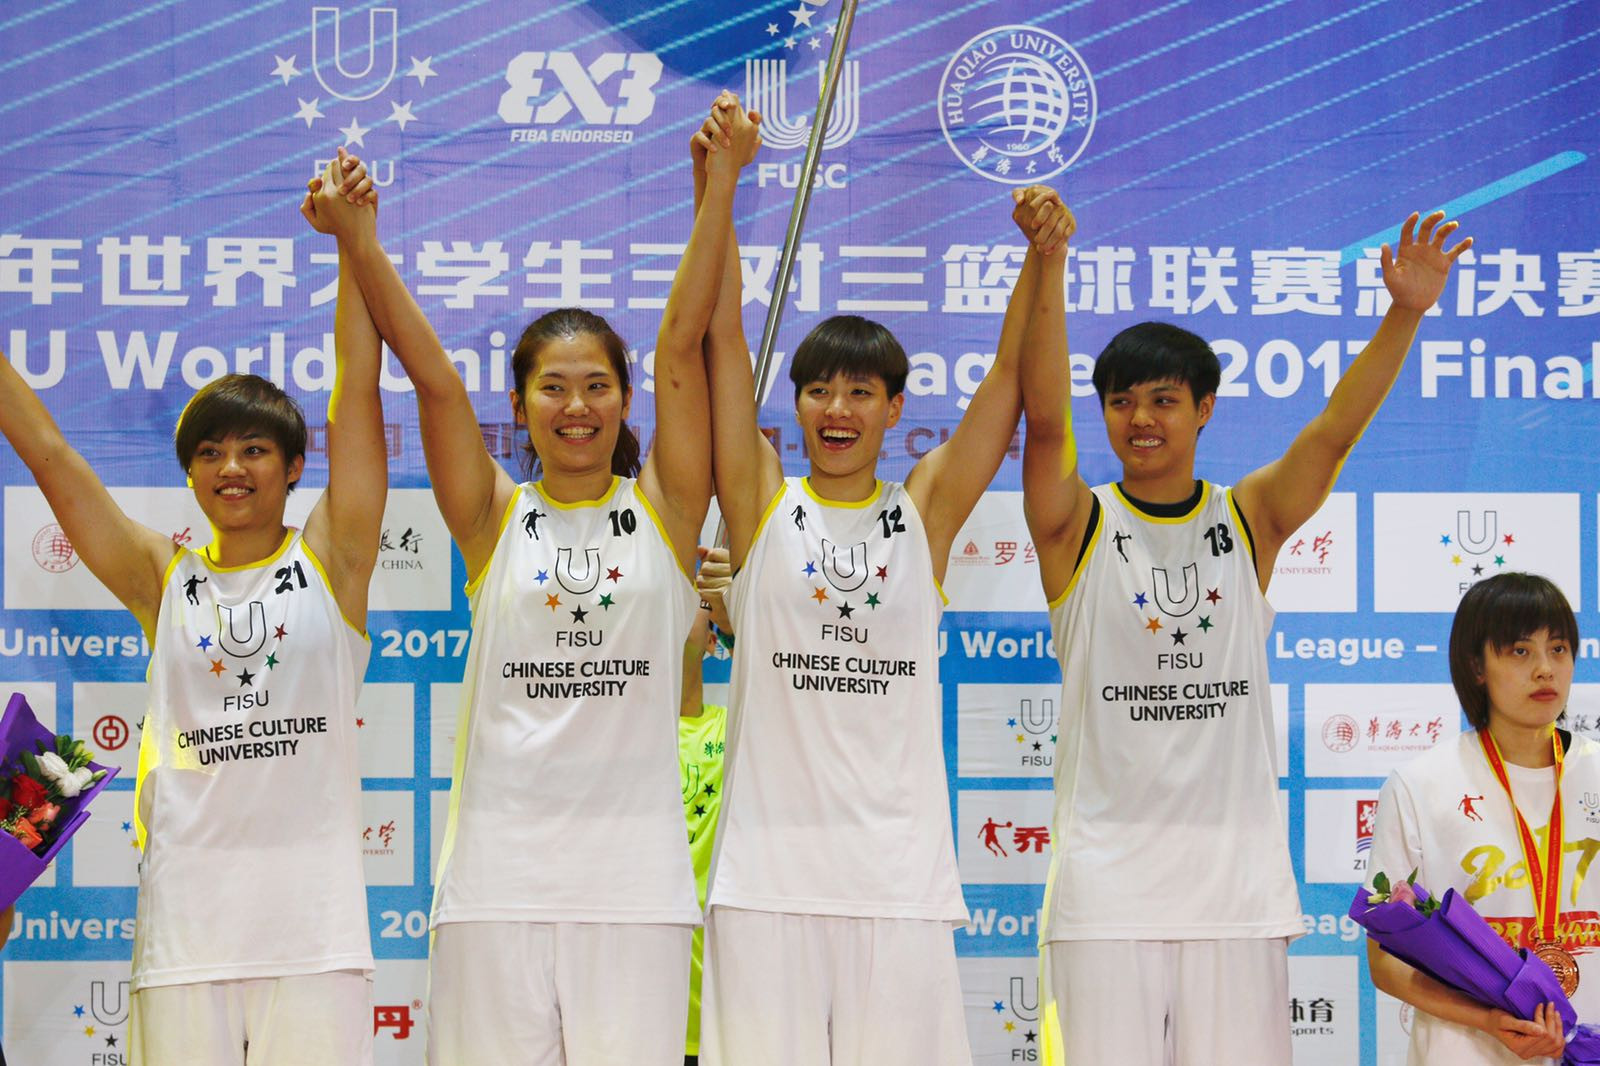 The Chinese Culture University were victorious in the women's event ©FISU